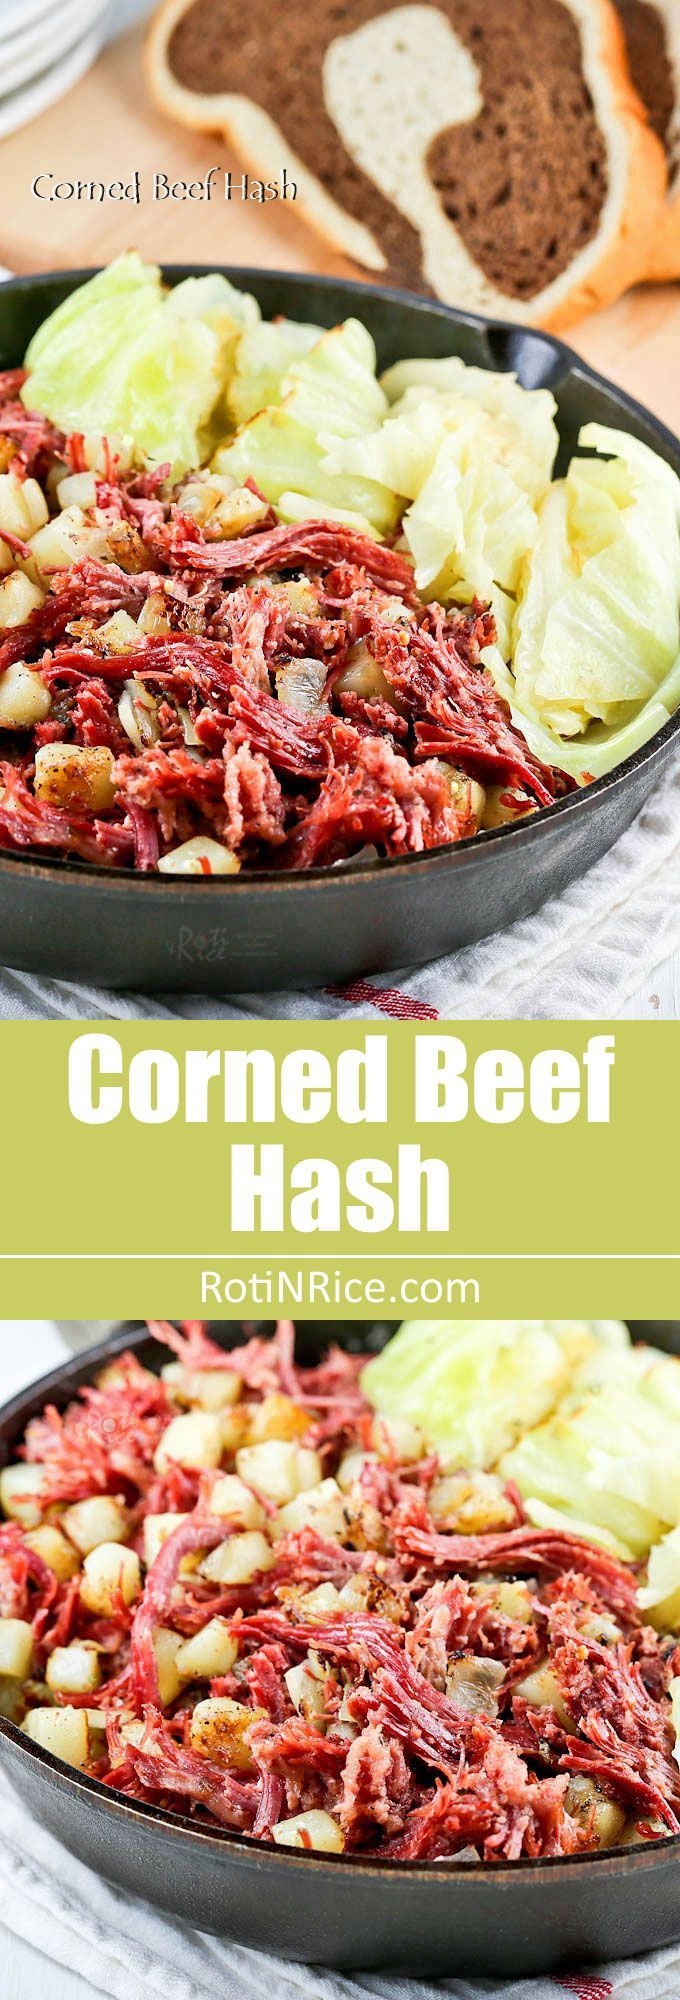 Corned Beef Hash - a delicious combination of tender shredded corned beef, potatoes, onions, and pan braised cabbage wedges. | http://RotiNRice.com